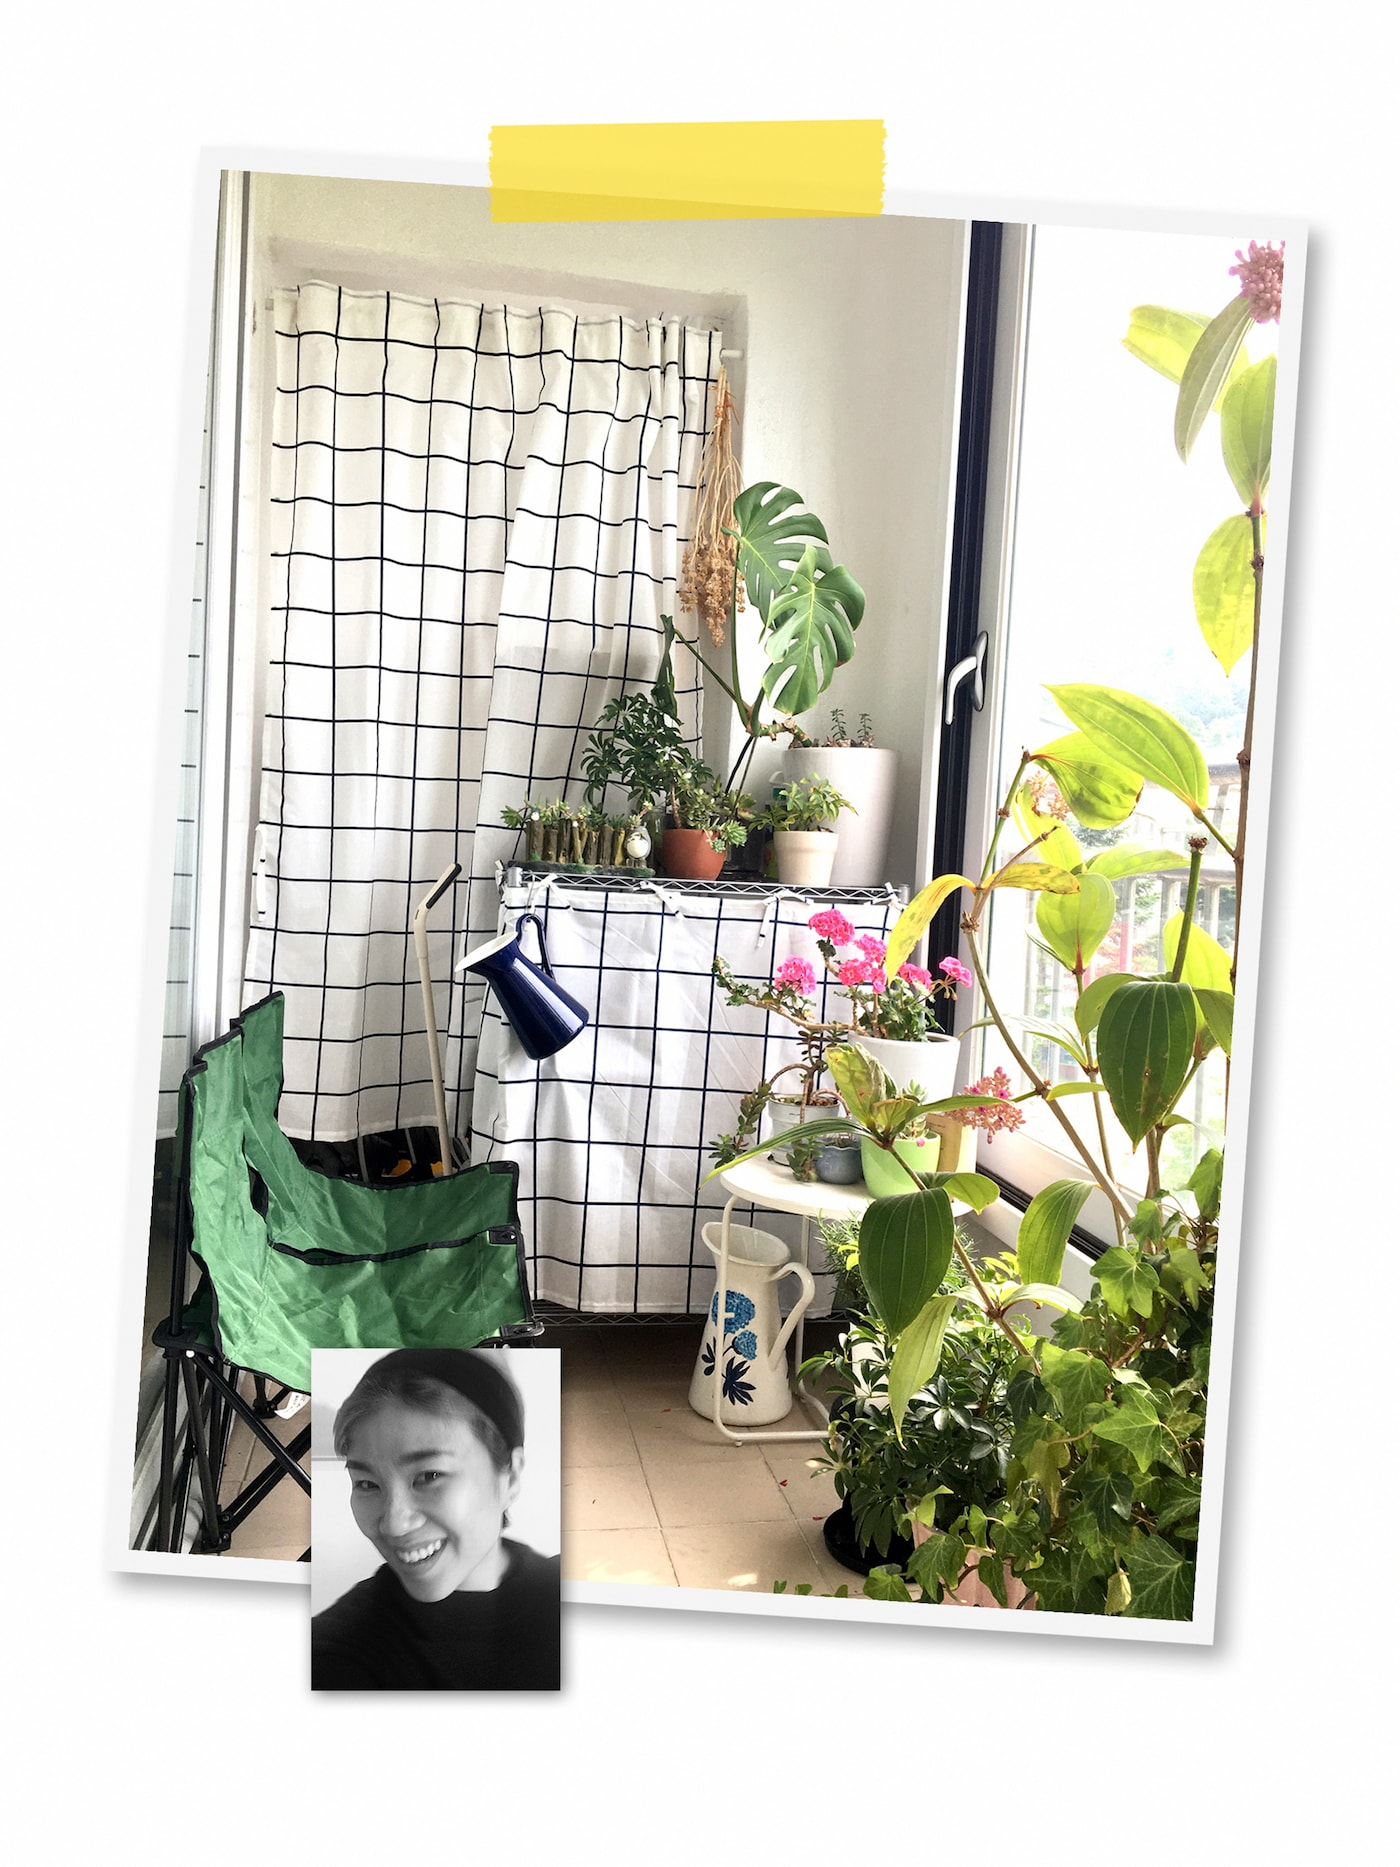 A two-image collage: a room filled with plants and shelves covered by patterned fabric, and a portrait of an IKEA co-worker.